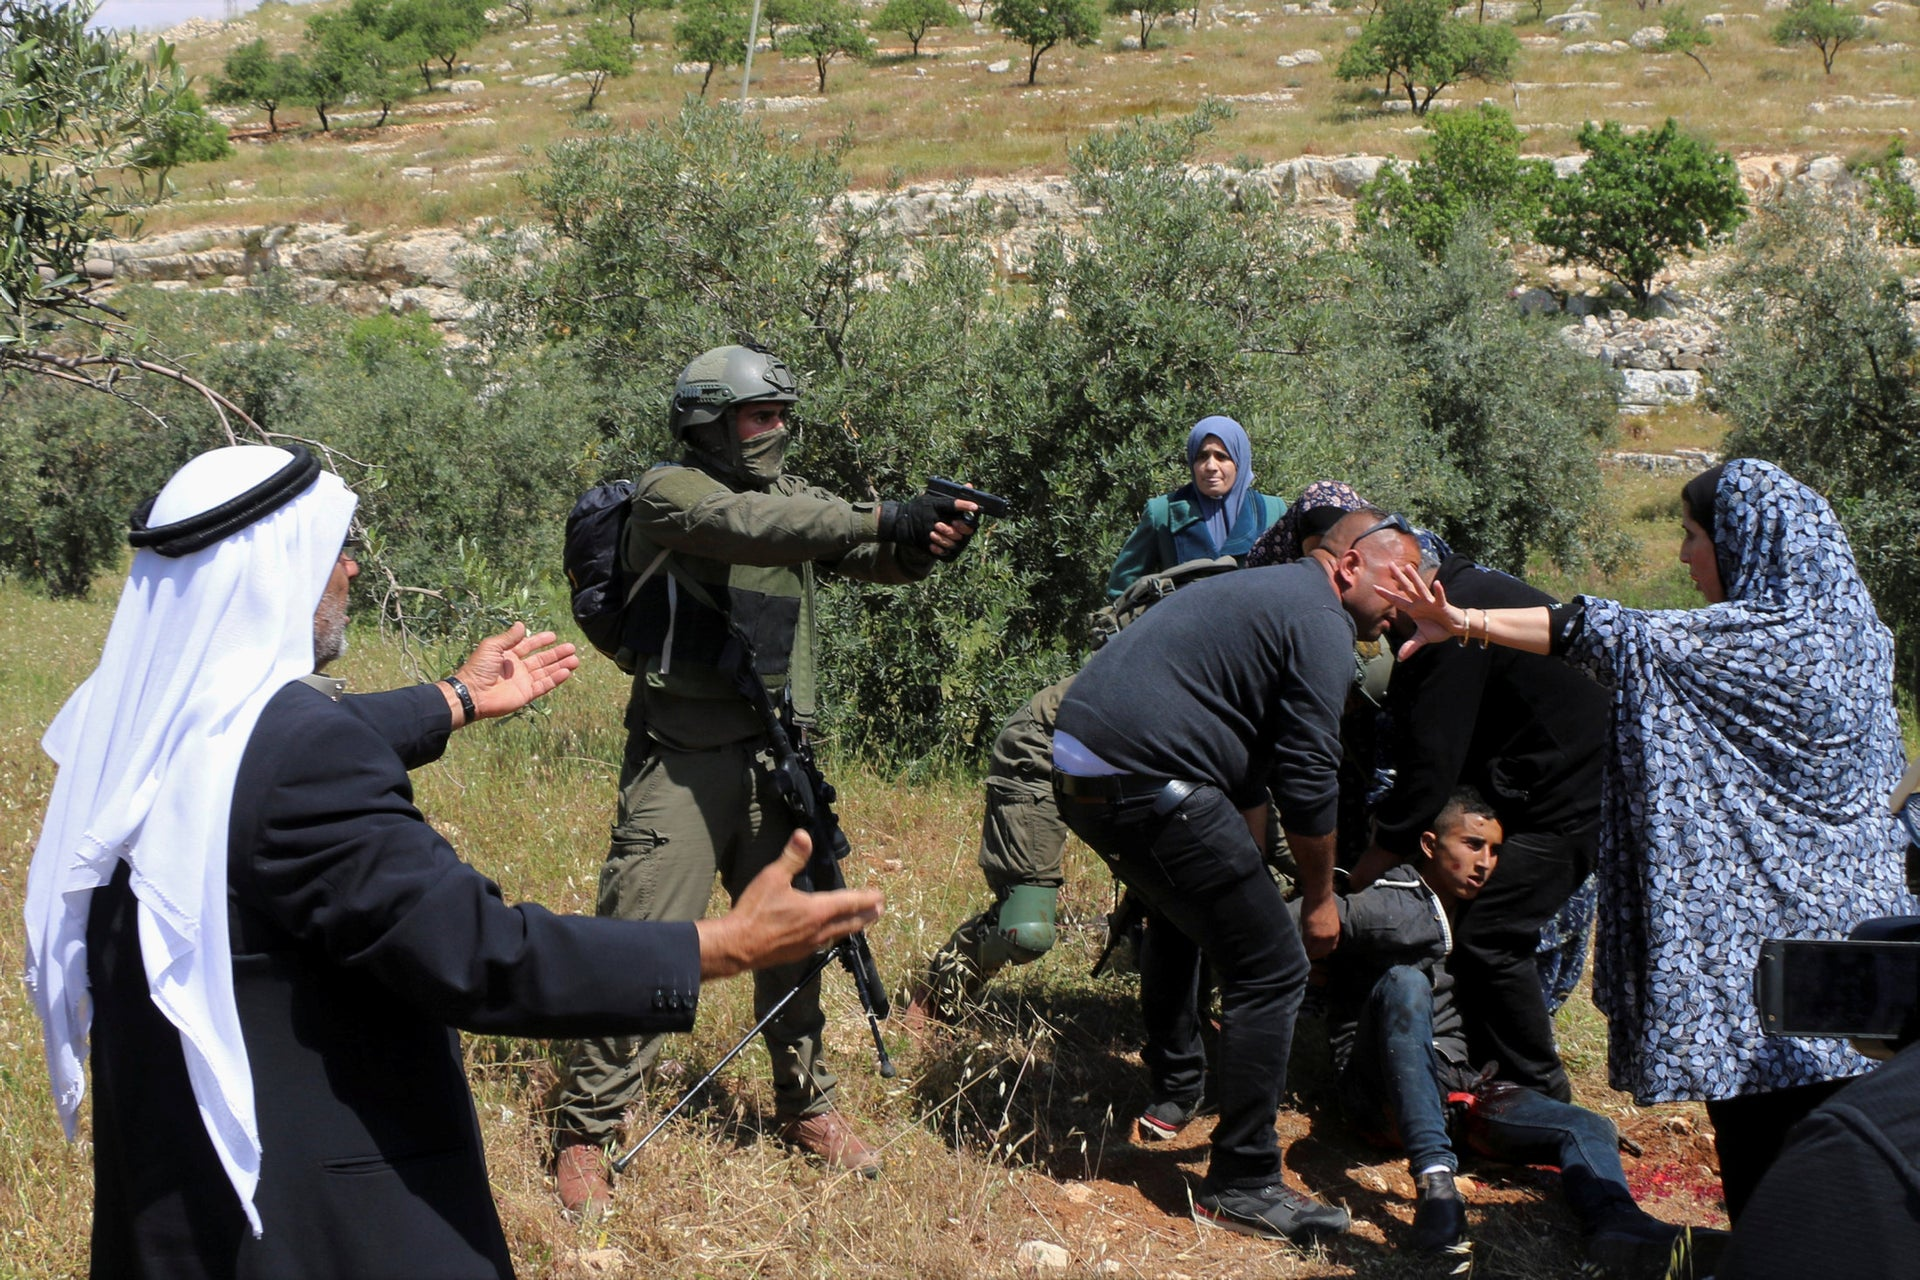 An Israeli soldier points his pistol at a group of Palestinians gathering around Osama Hajahjeh, who was shot by IDF troops.